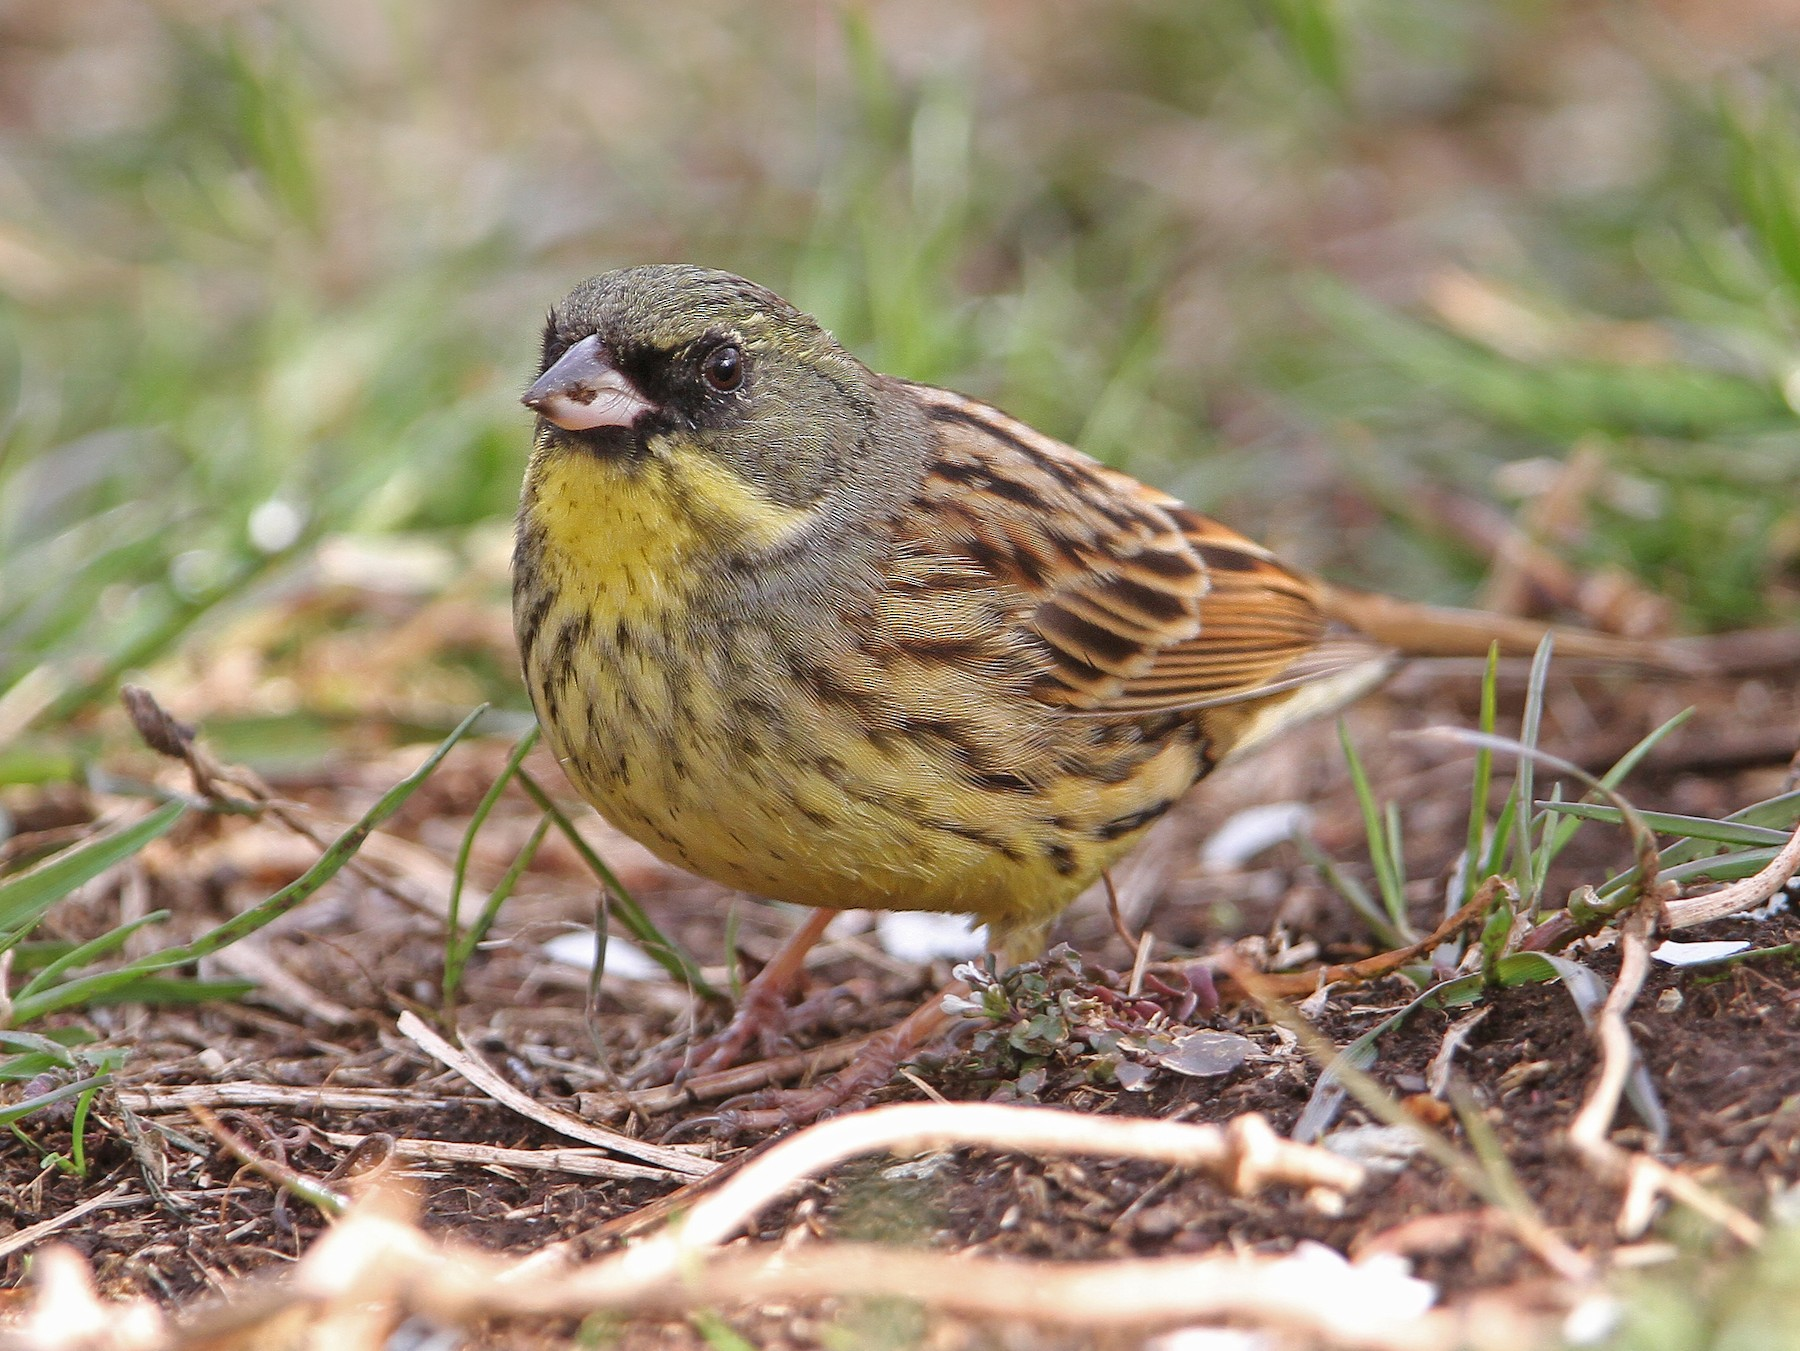 Black-faced Bunting - Christoph Moning